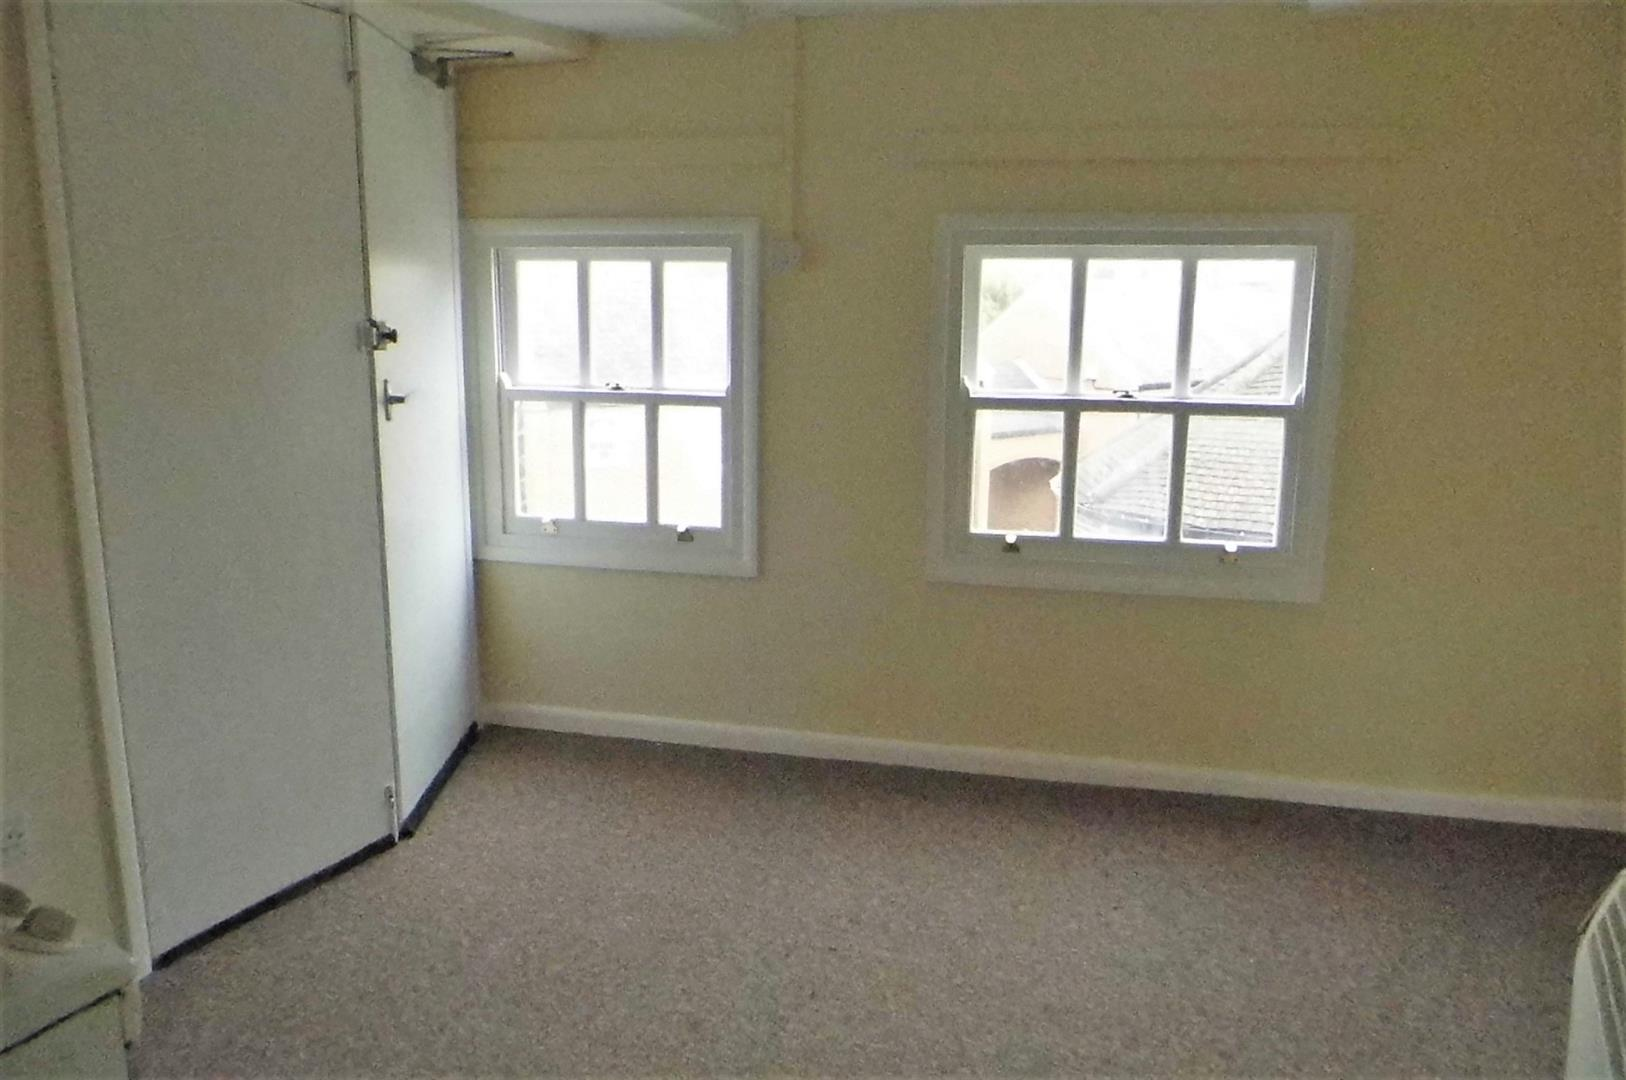 Flat to rent in South Everard Street, King's Lynn, PE30